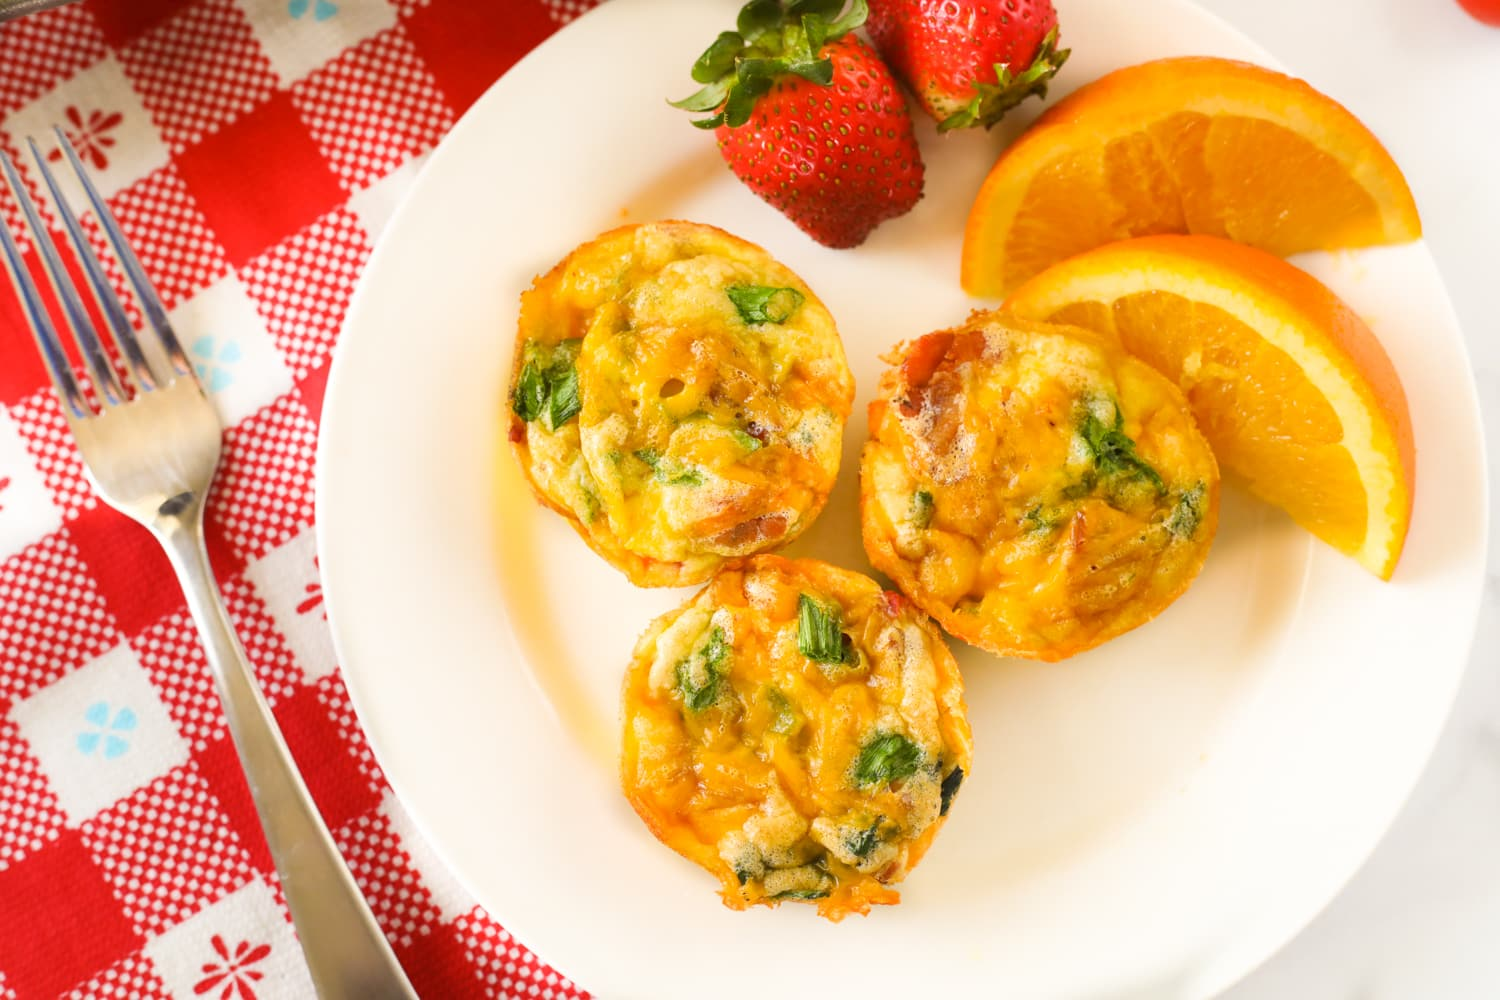 Egg muffins with strawberries and oranges